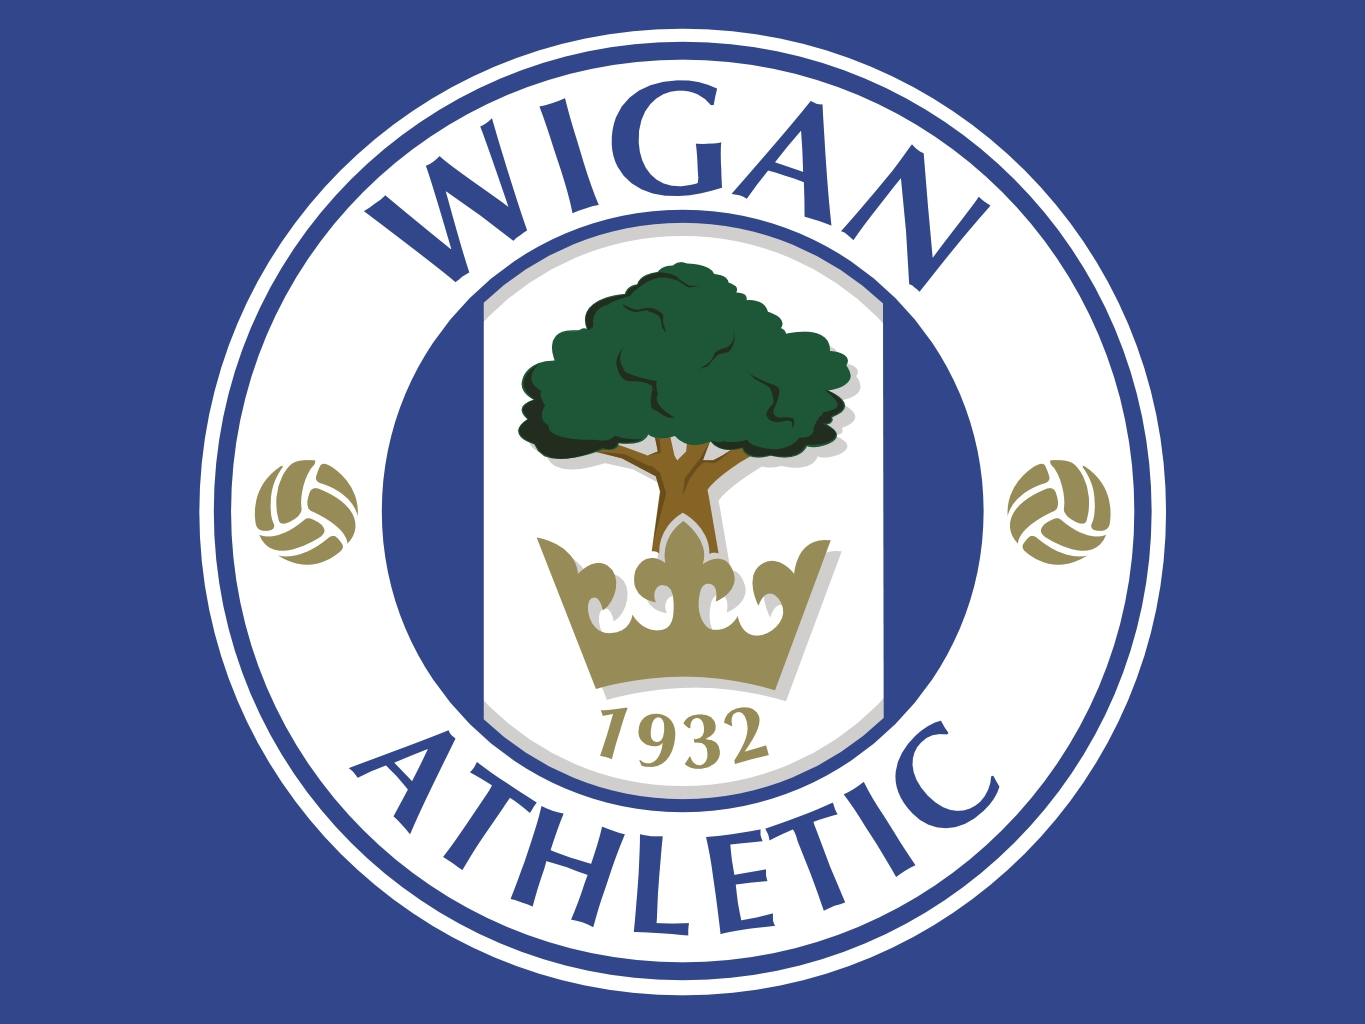 Chùm ảnh: Wigan Athletic (2)